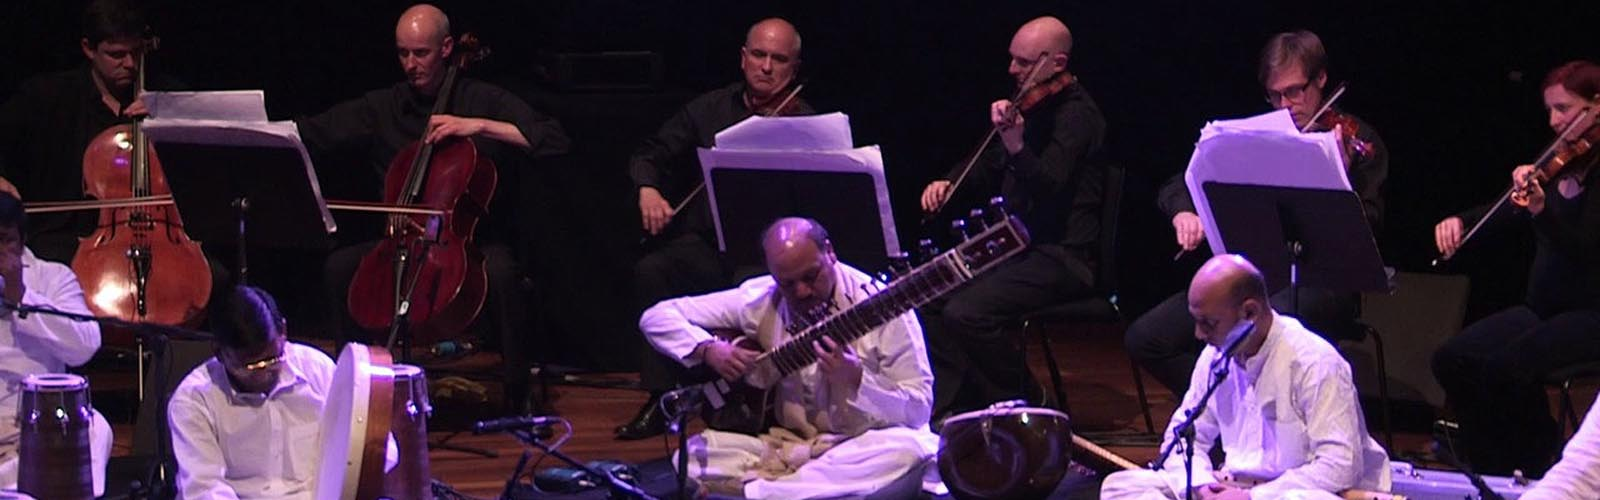 Sachal Jazz to perform at UN marking Pakistan's Independence Day